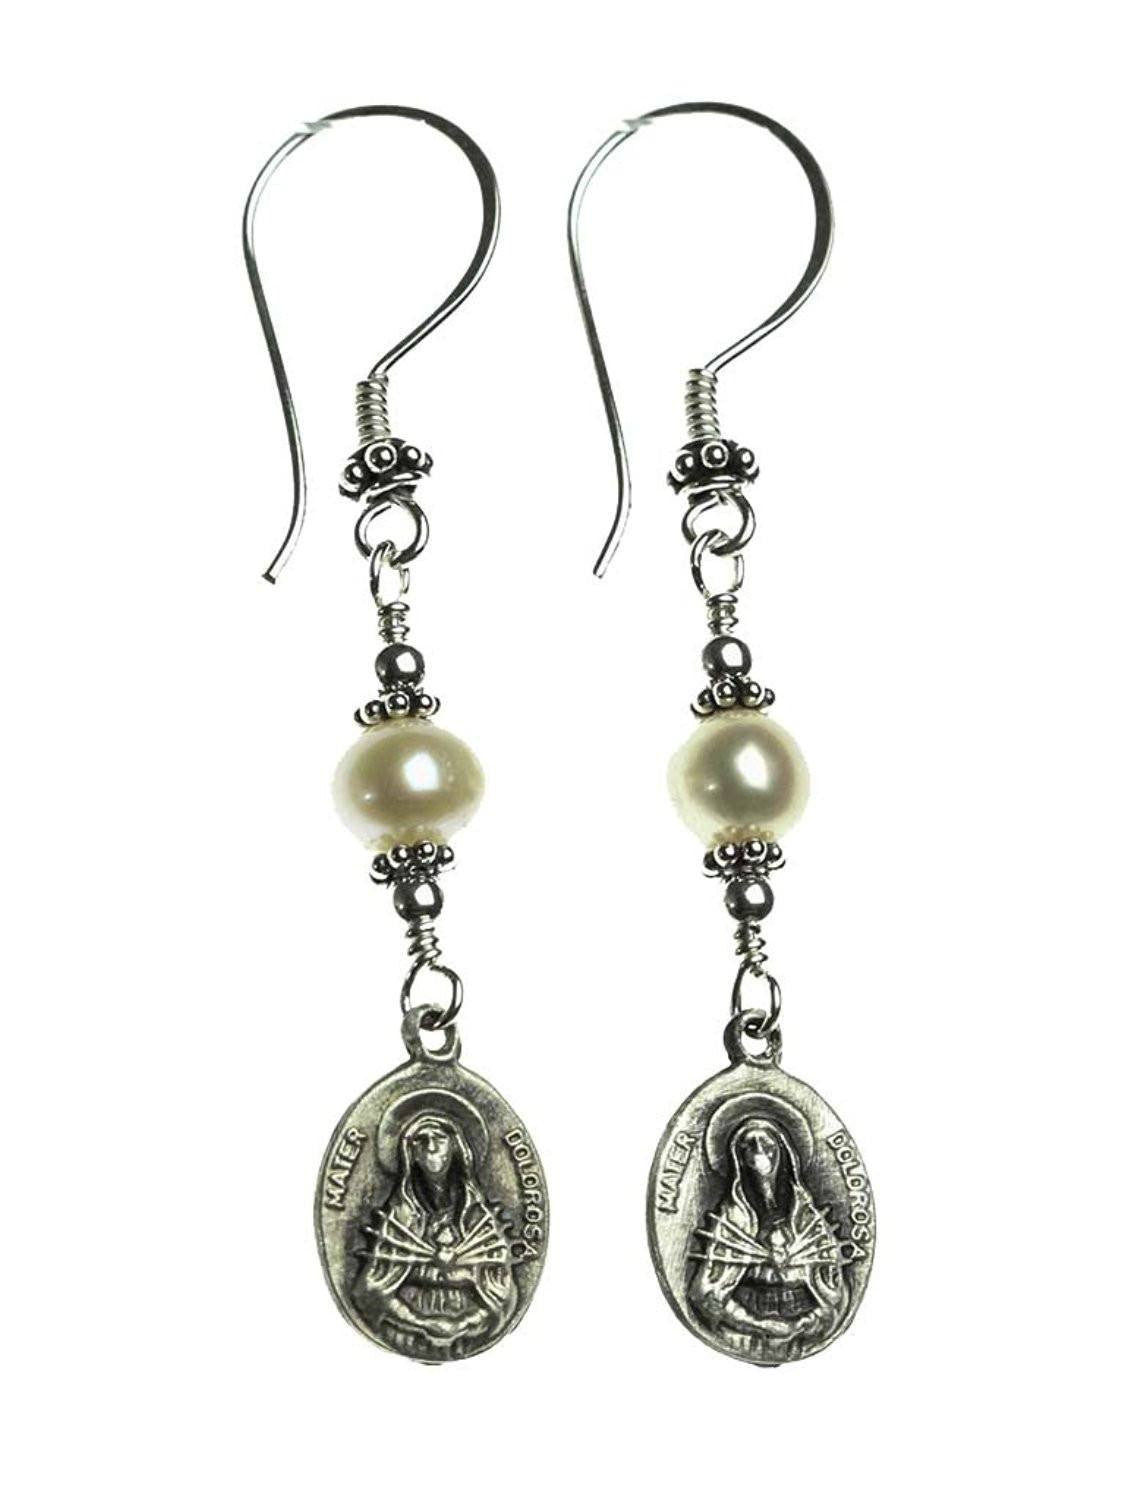 Handmade Sterling Silver Pearls & Our Lady of Sorrows Medal Earrings